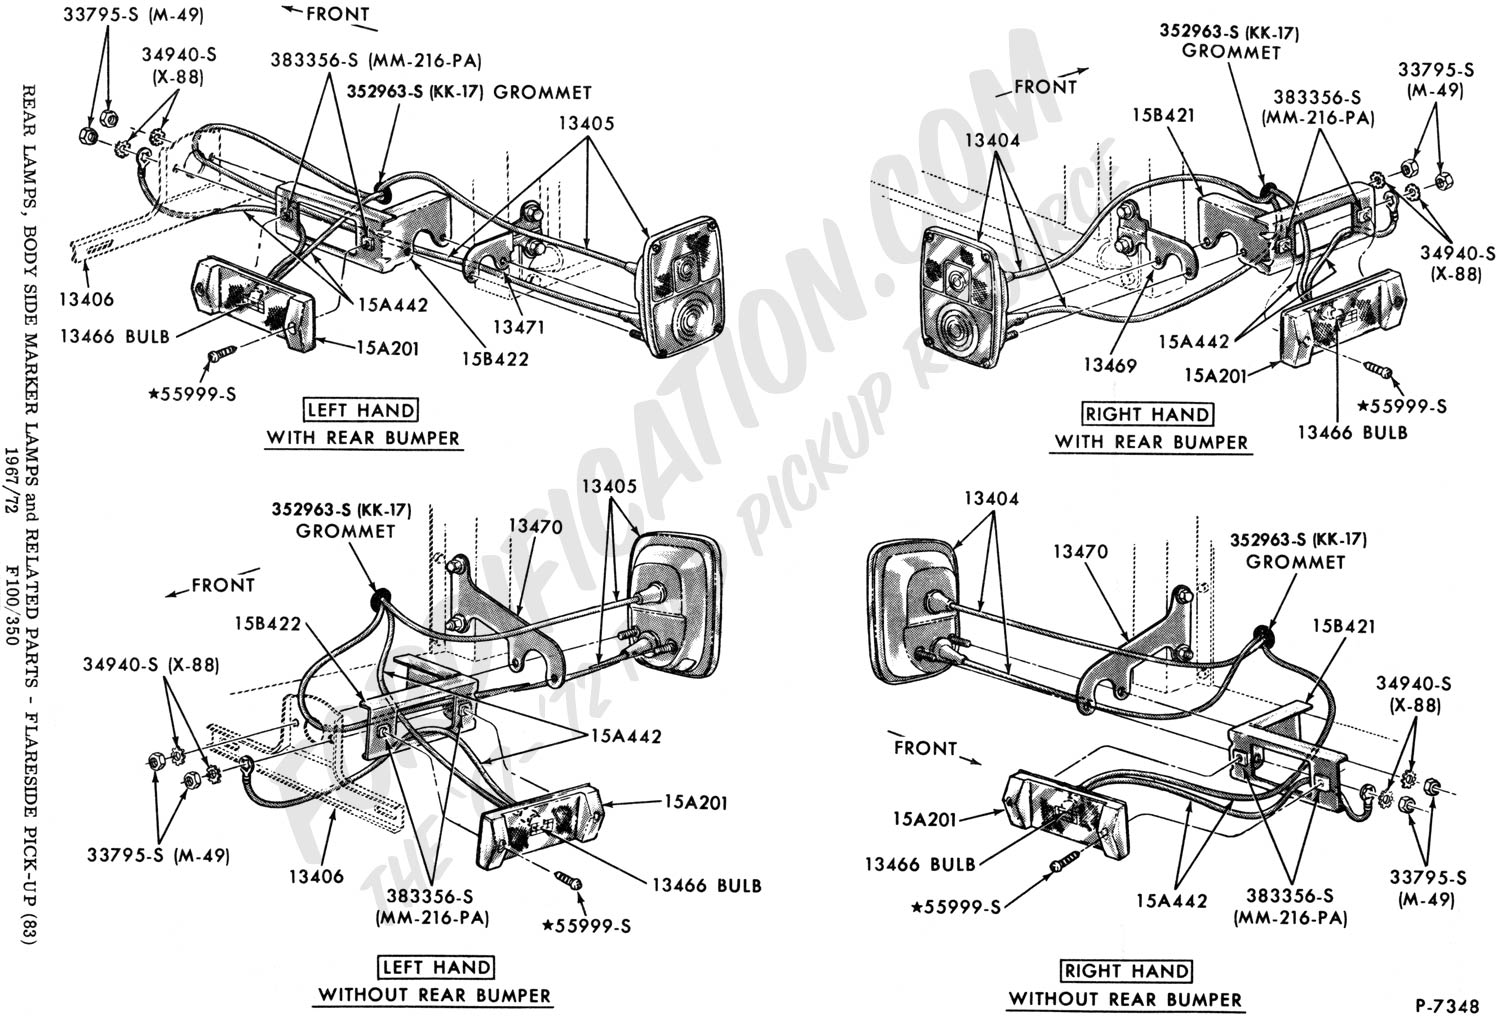 Painless Wiring Harness Diagram 1967 Nova as well Chevy Silverado Tail Light Wiring further Chevy Cargo Light Wiring Diagram together with Wiring Diagram For 1976 Corvette together with  on 1957 a chevy ls engine wiring harness